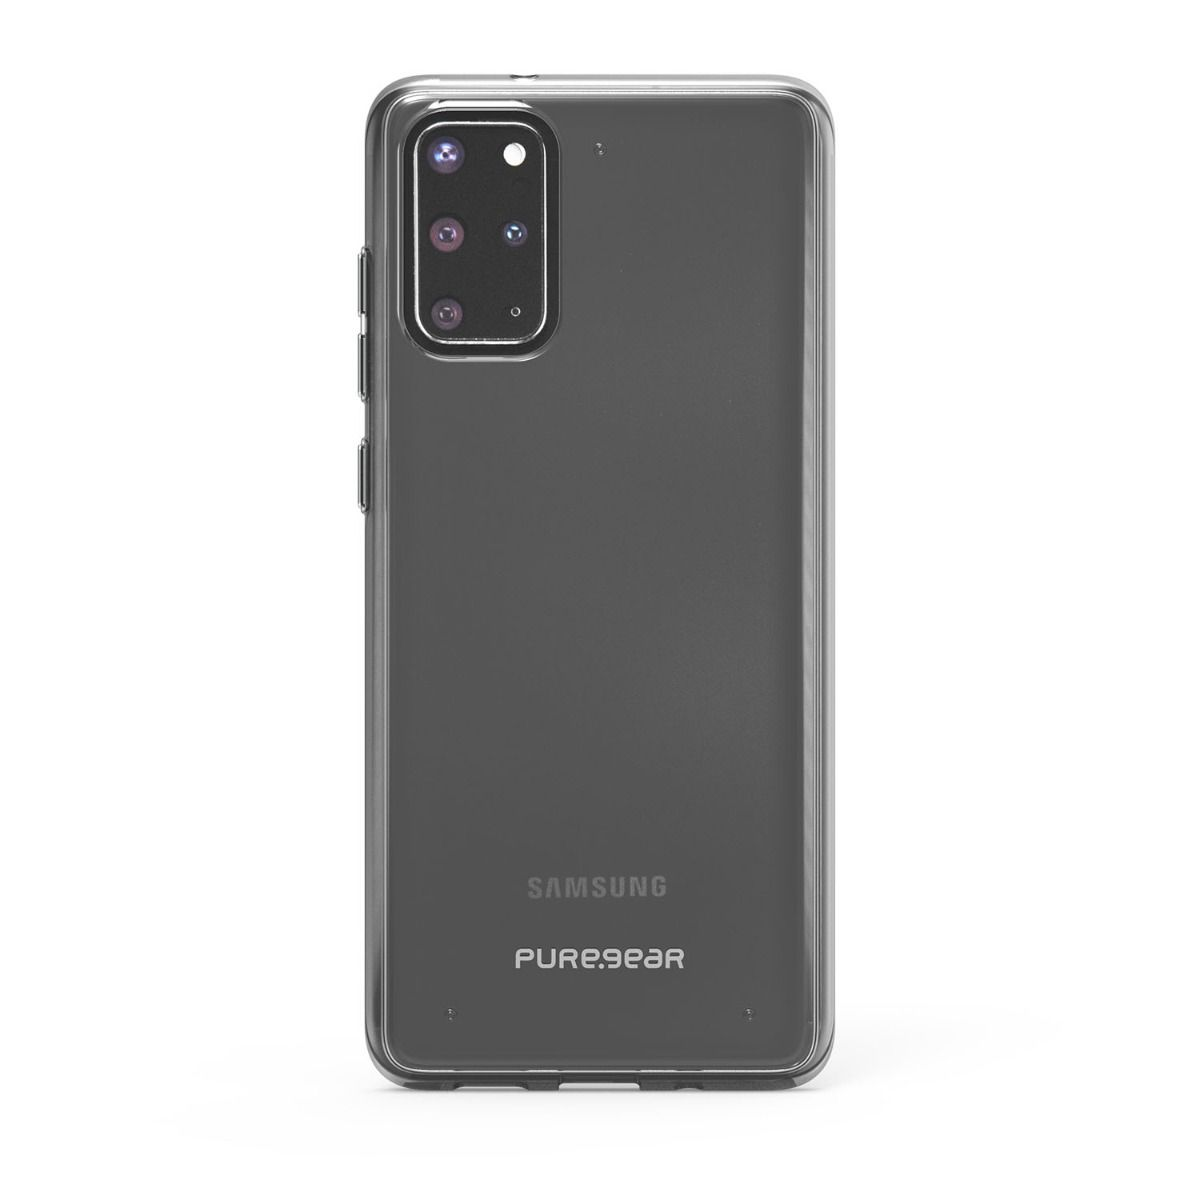 Samsung Galaxy S20+ Slim Shell Cell Phone Case - Clear/Black